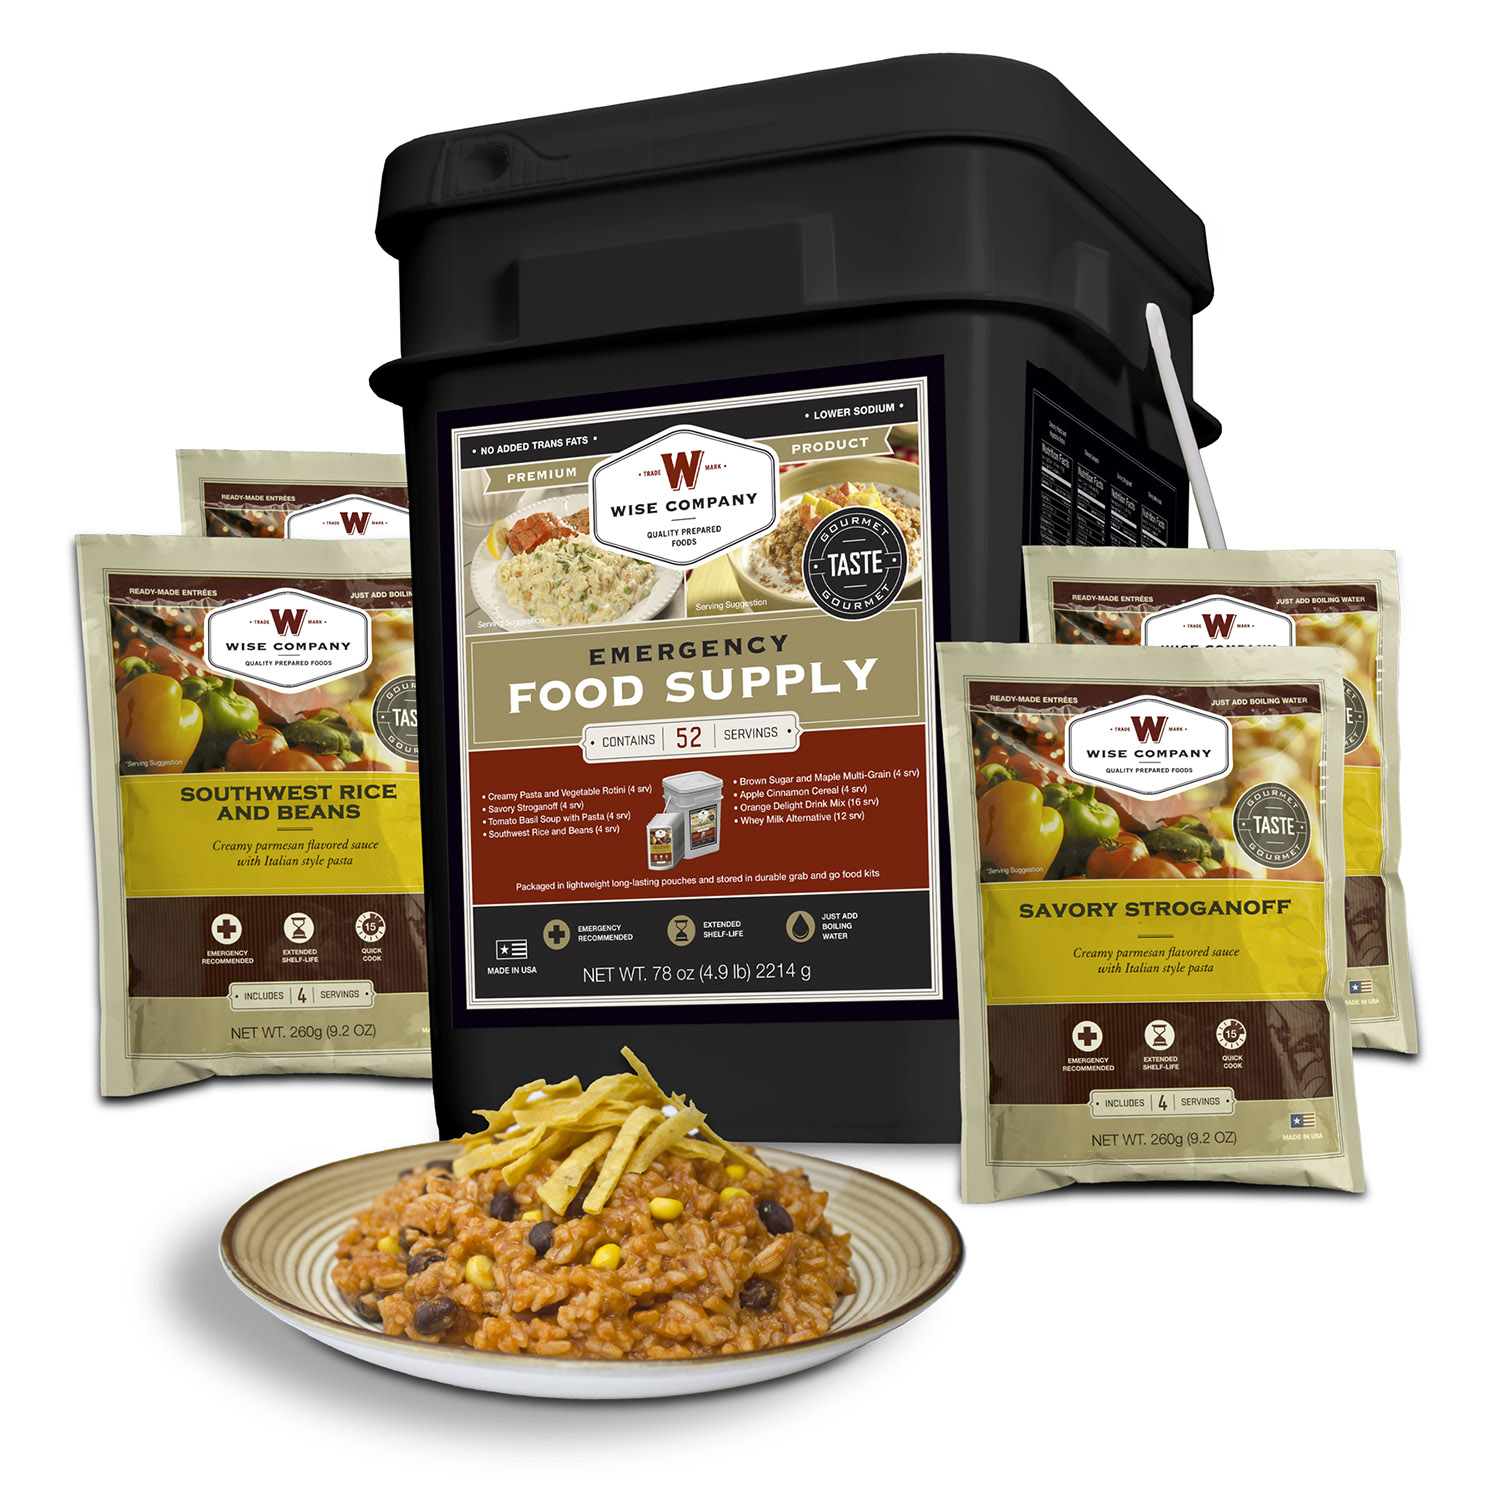 Wise Company Food Prepper Pack